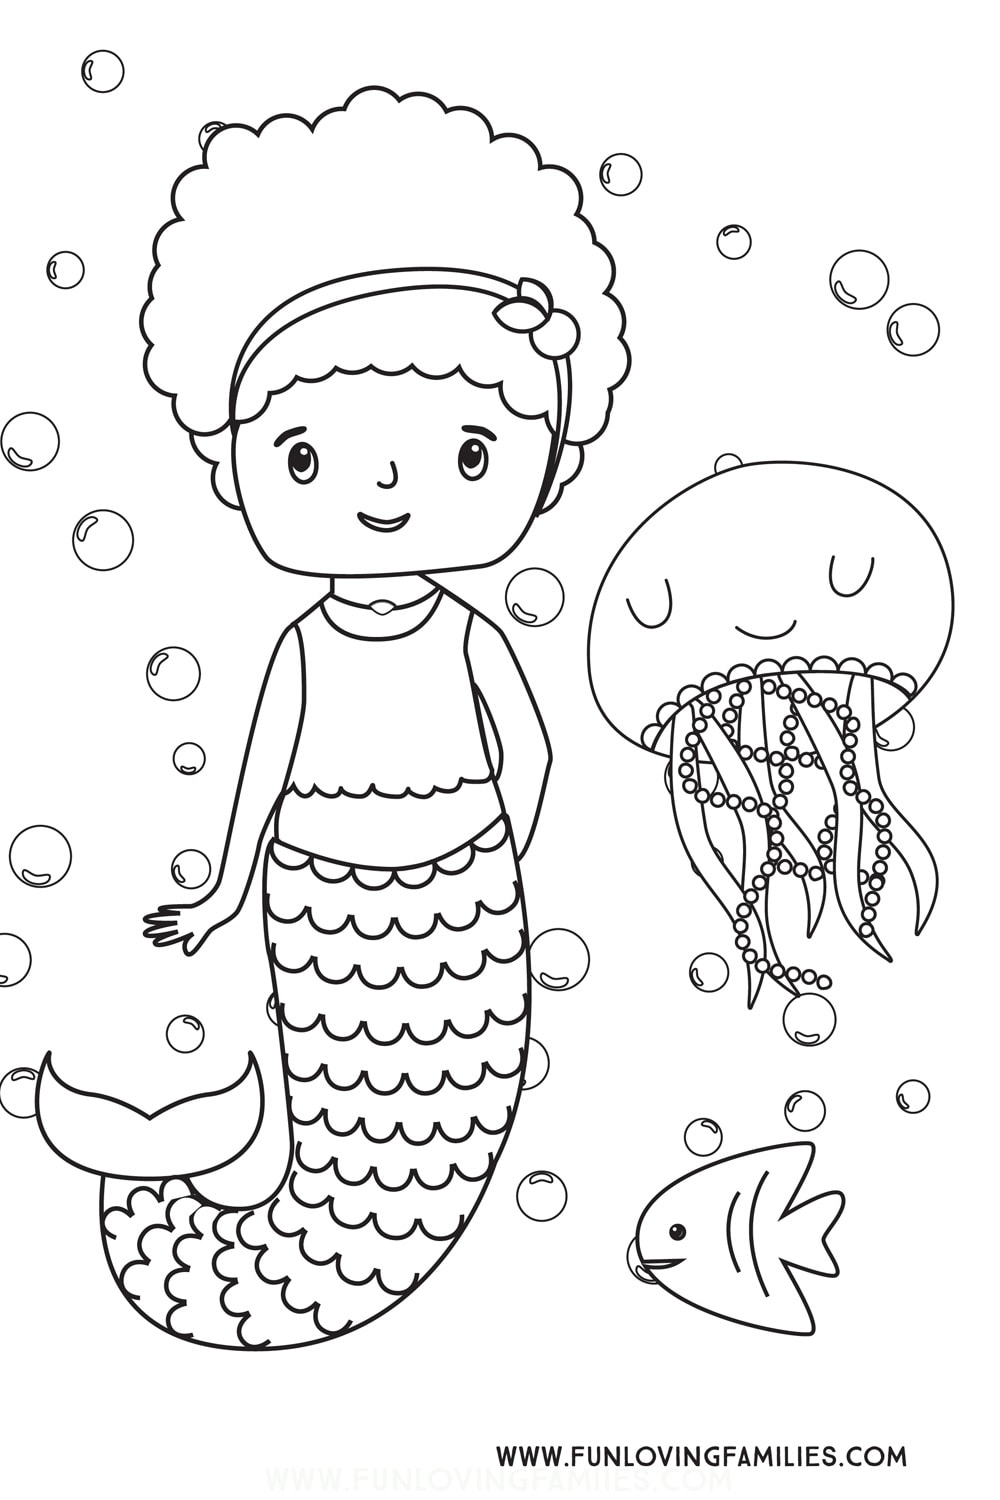 6 Cute Mermaid Coloring Pages For Kids (Free Printables) - Fun Loving  Families